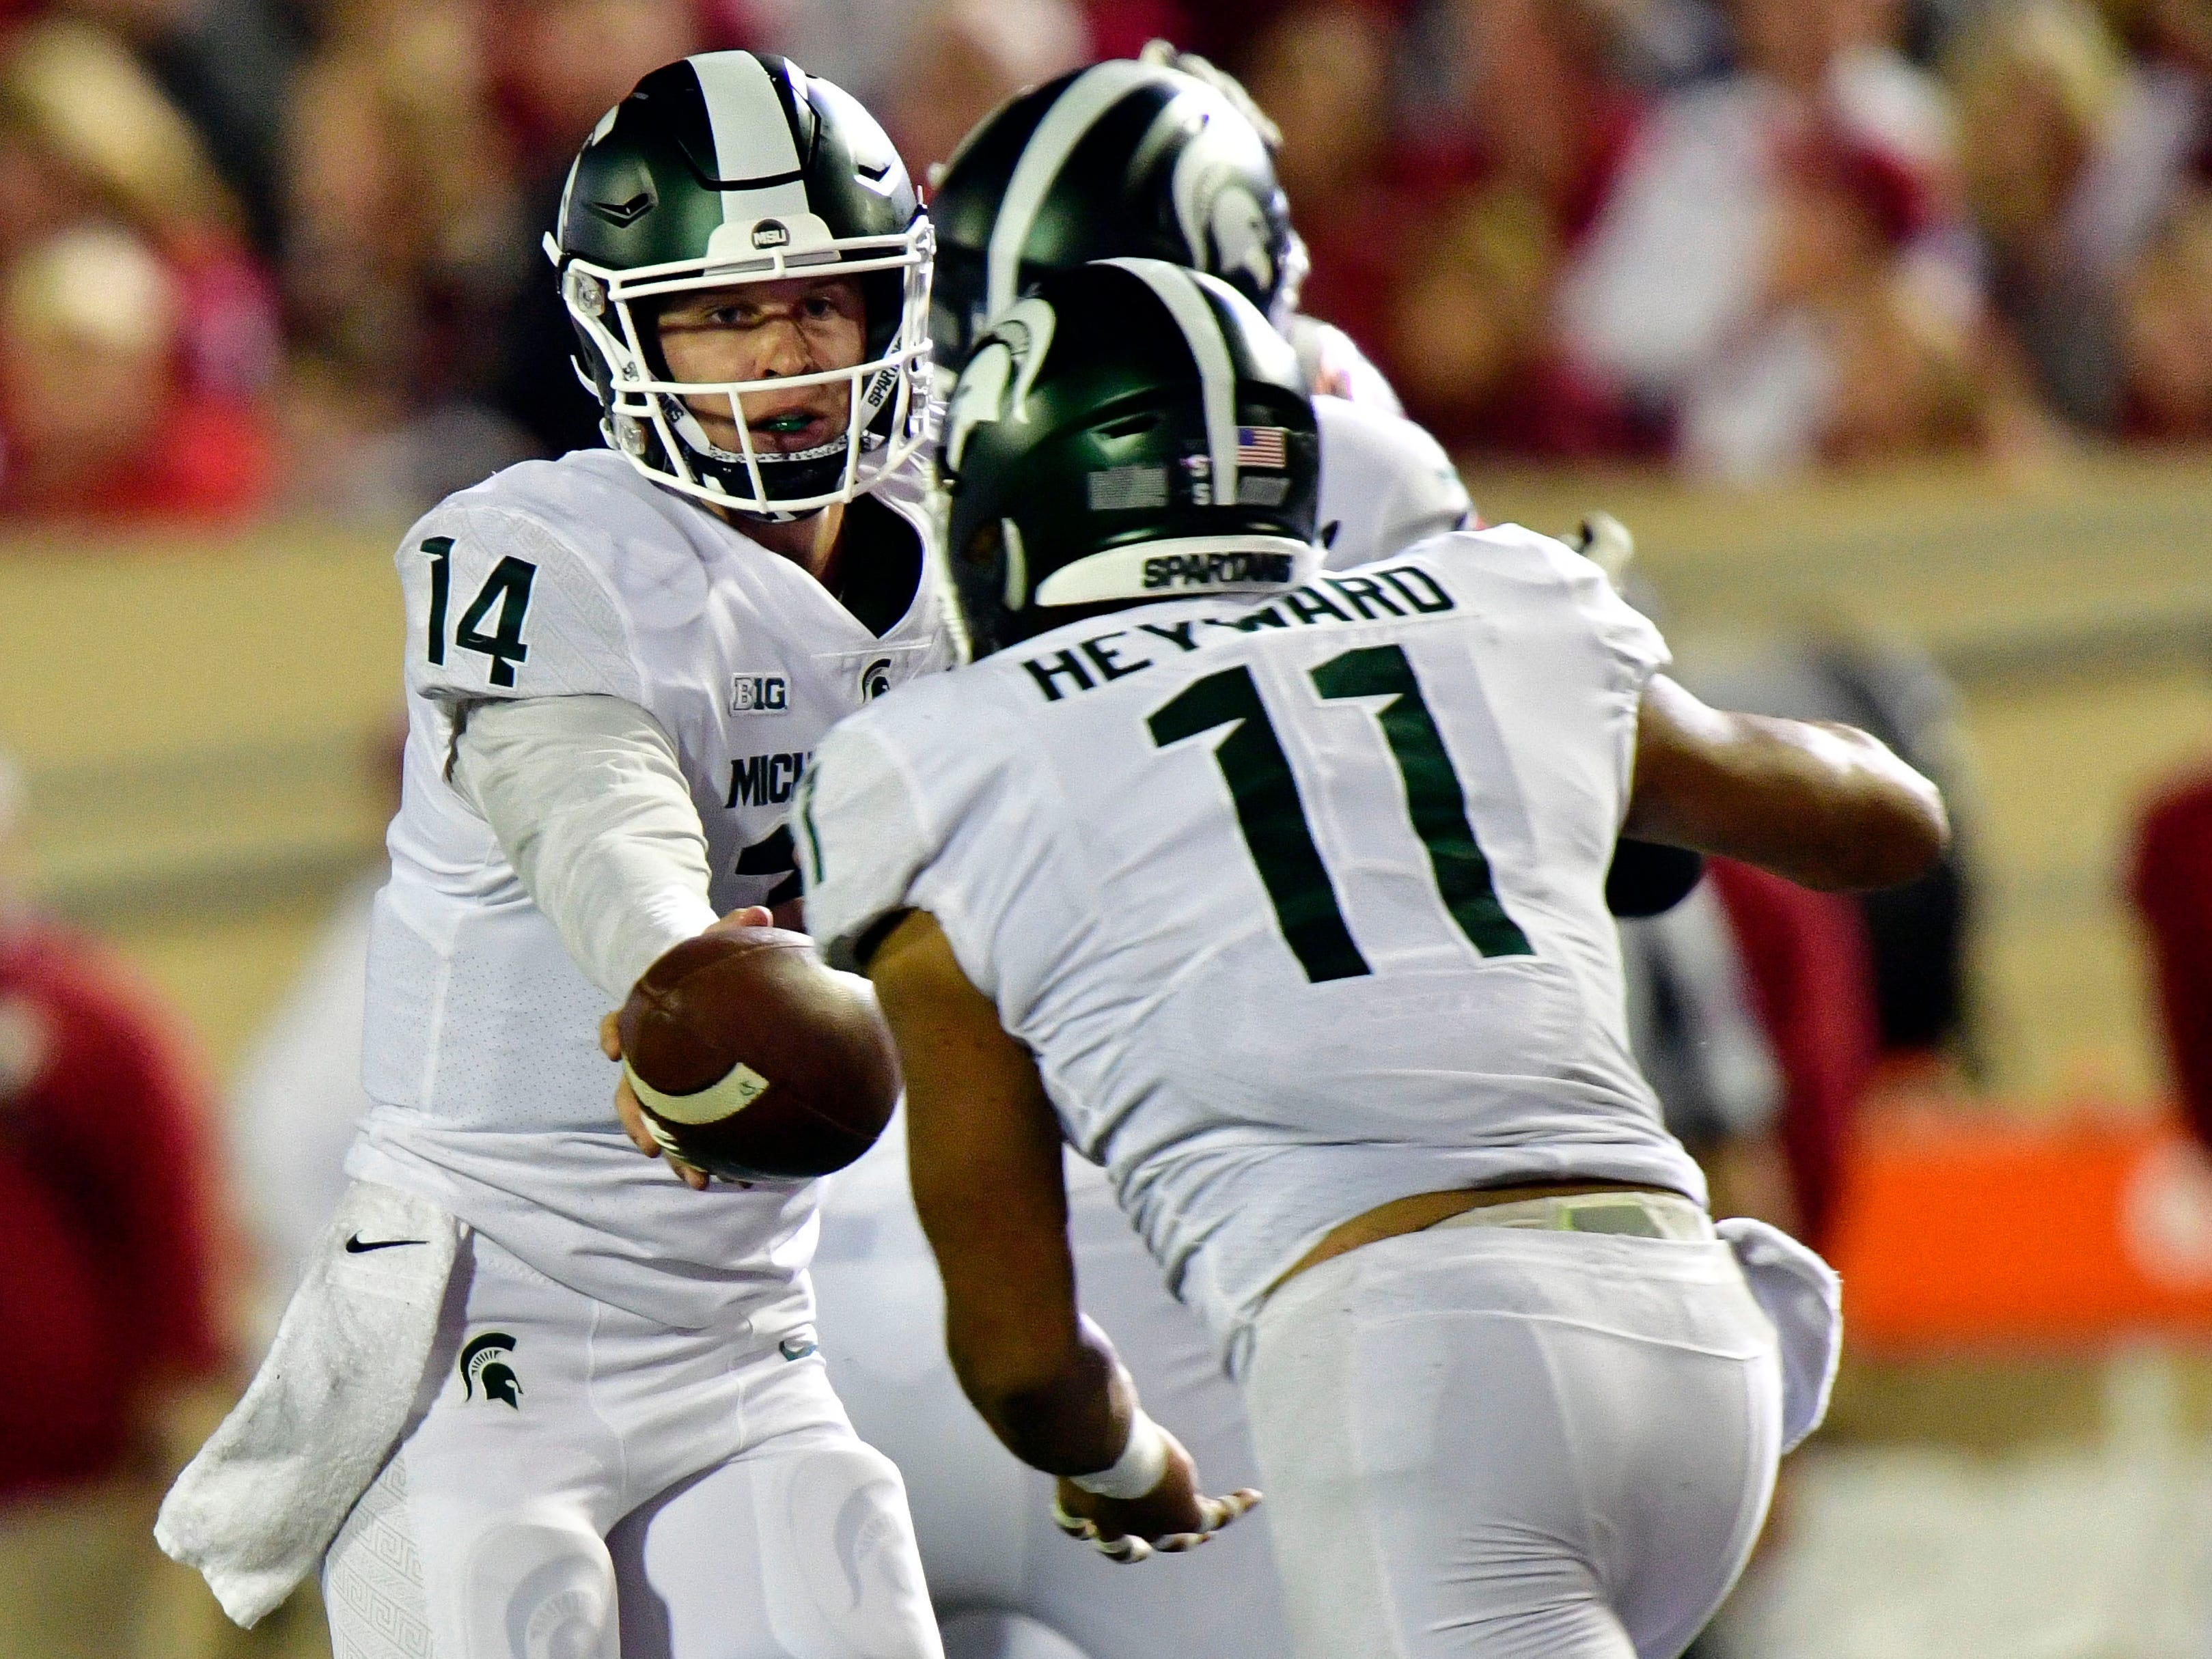 Michigan State Spartans quarterback Brian Lewerke (14) hands the ball off to running back Connor Heyward (11)  during the second quarter of the game at Memorial Stadium.